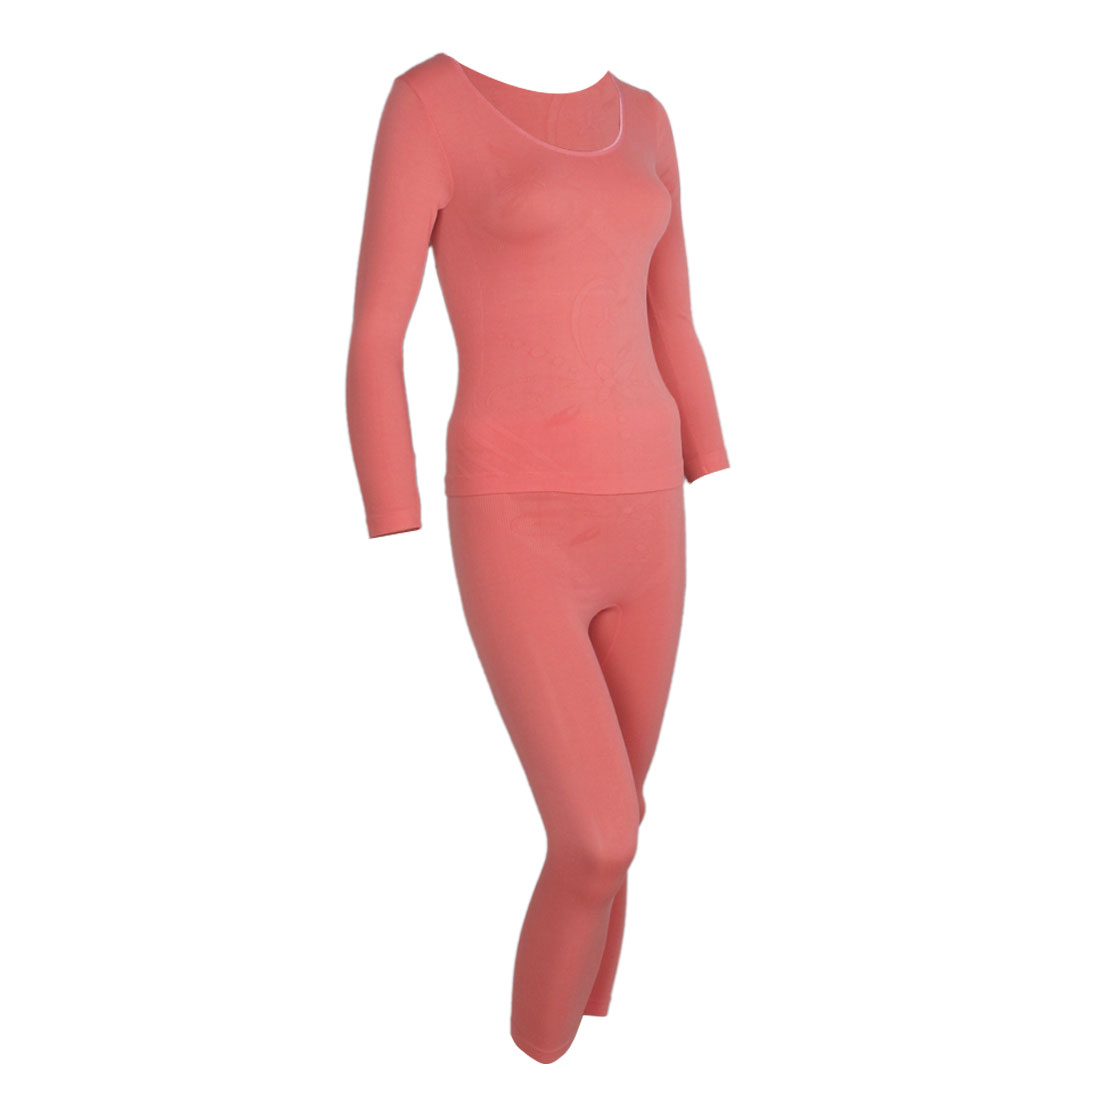 Watermelon Red Scoop Neck Stretchy Thermal Underwear Suits for Women XS